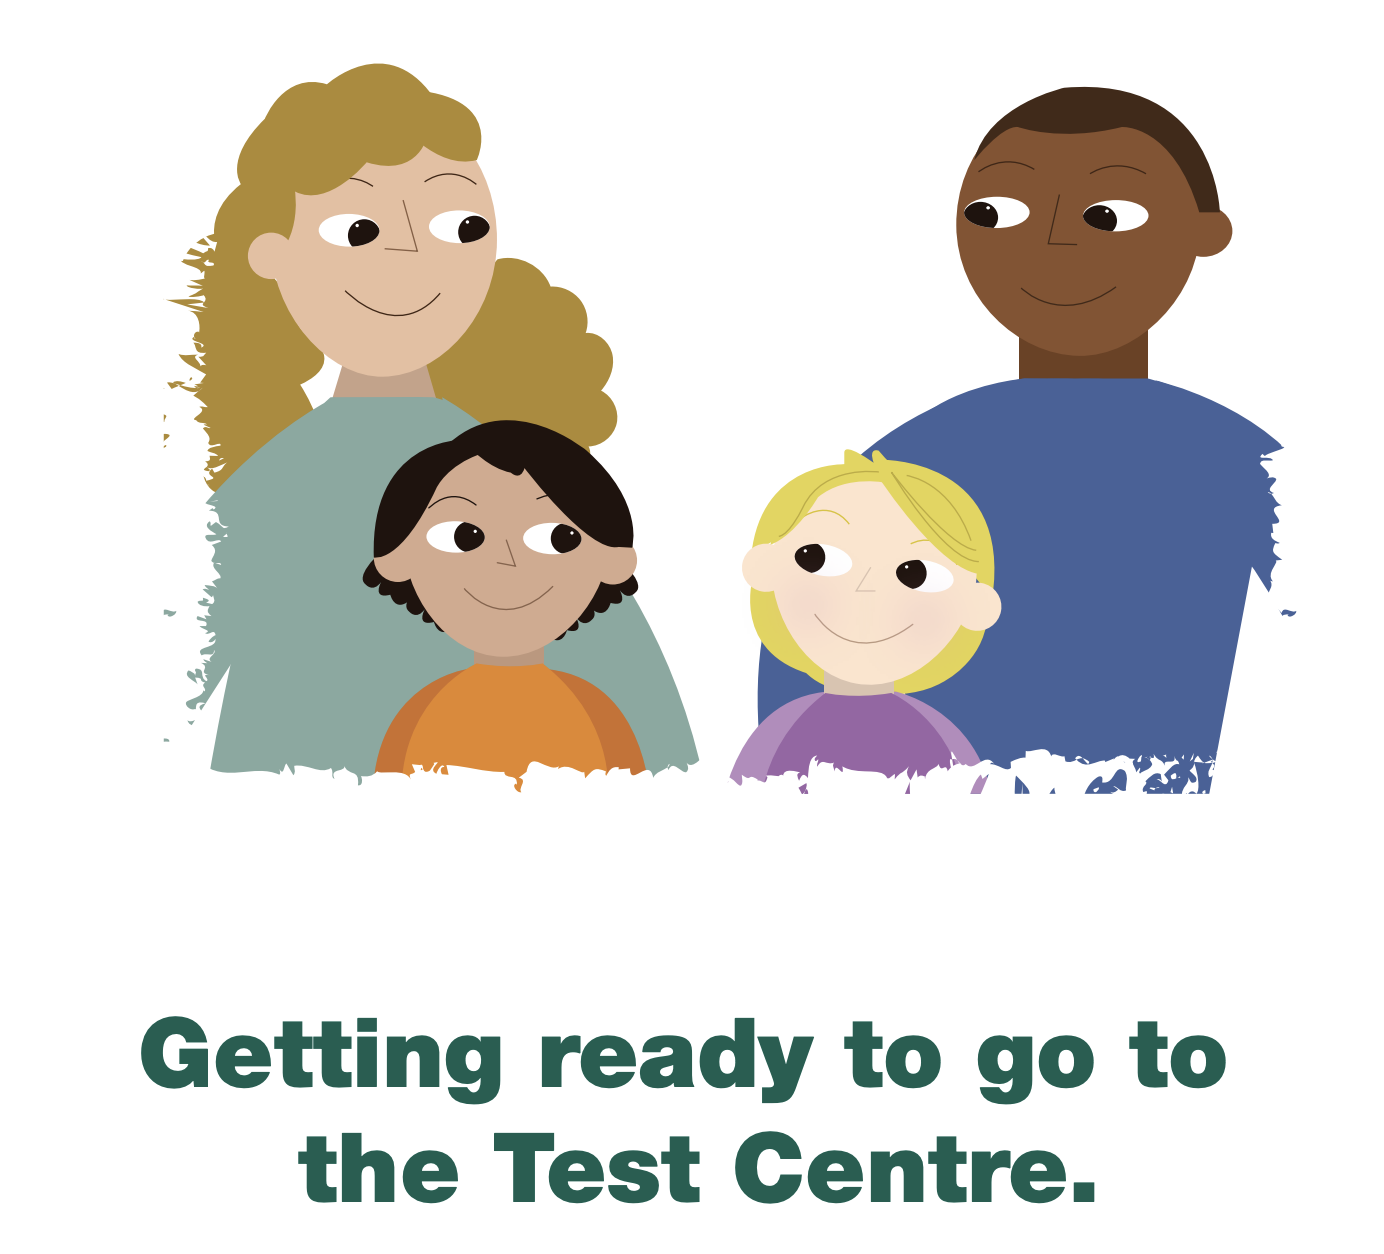 Getting ready to go to the COVID-19 Test Centre for kids